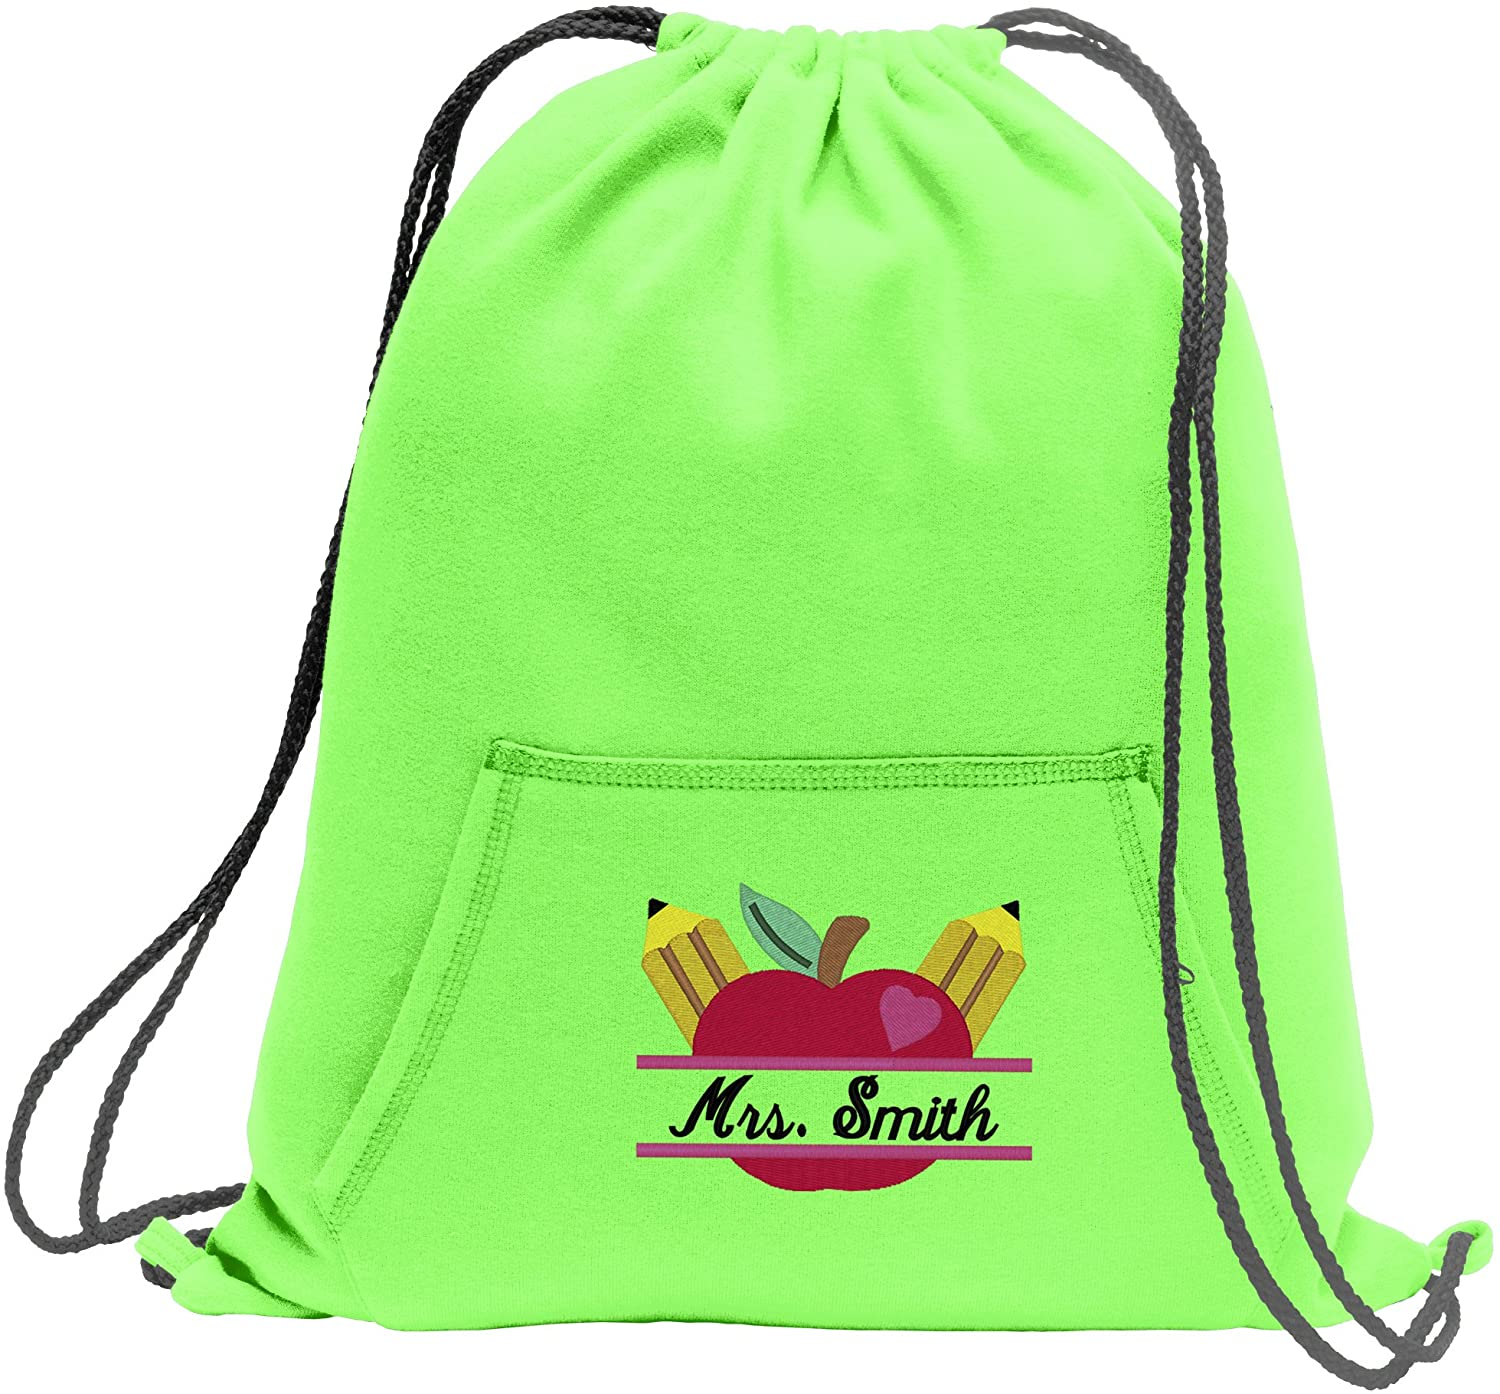 Personalized Cinch Bag with Custom Text | Designed with Customizable Teacher's Apple Monogram Drawstring Bag